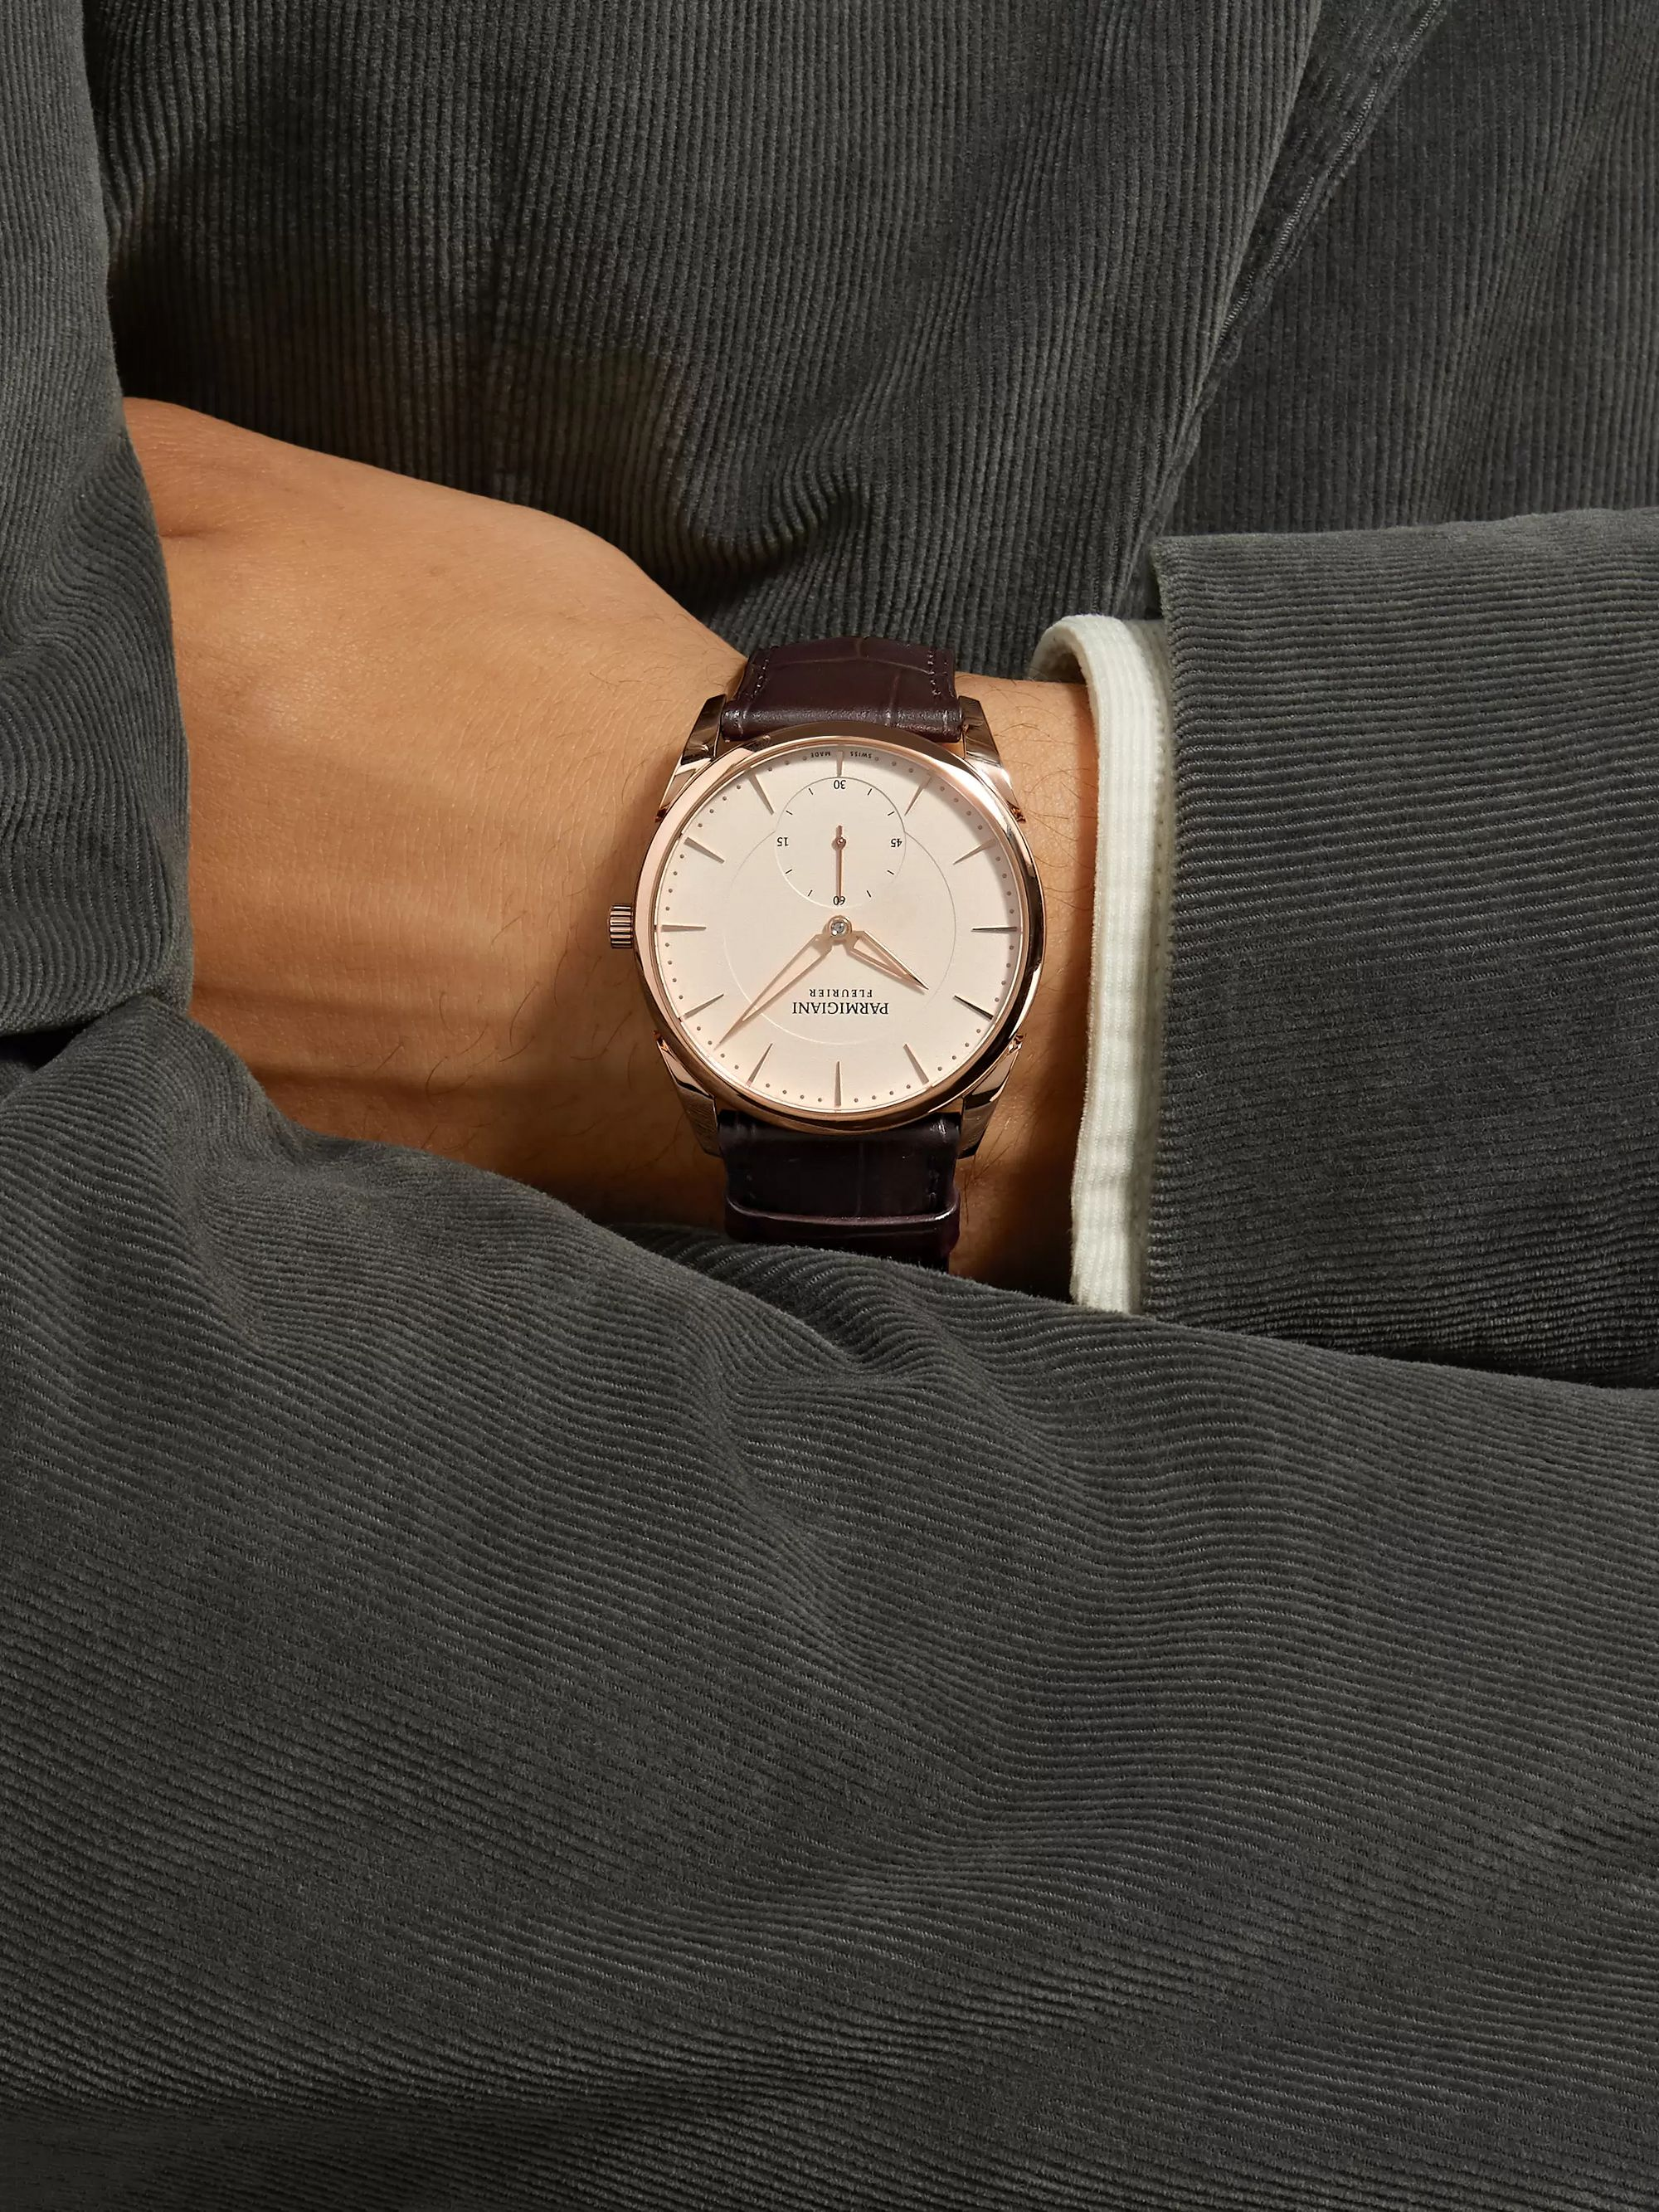 Parmigiani Fleurier Tonda 1950 Automatic 39mm 18-Karat Rose Gold and Alligator Watch